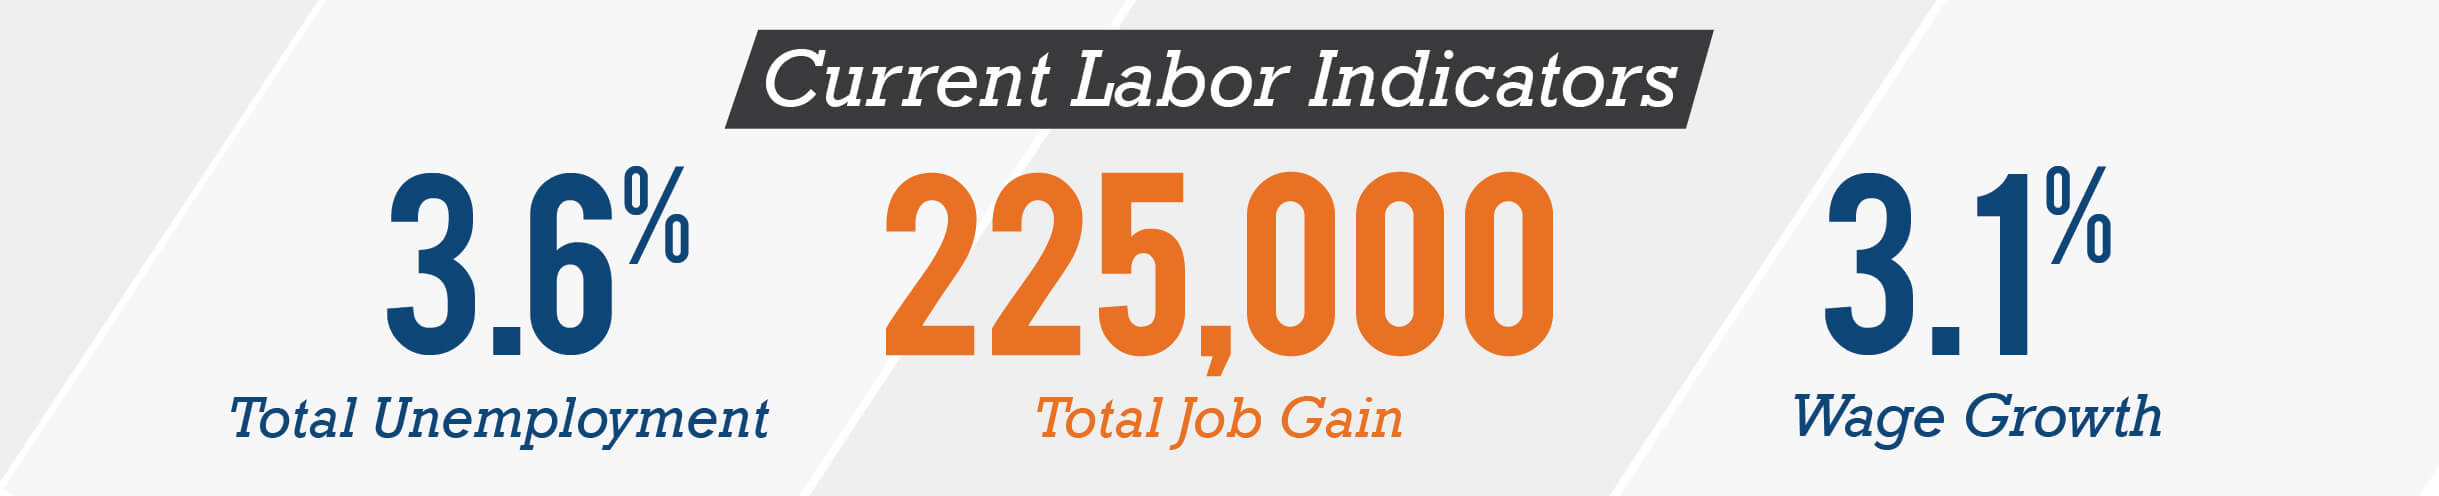 current labor indicators